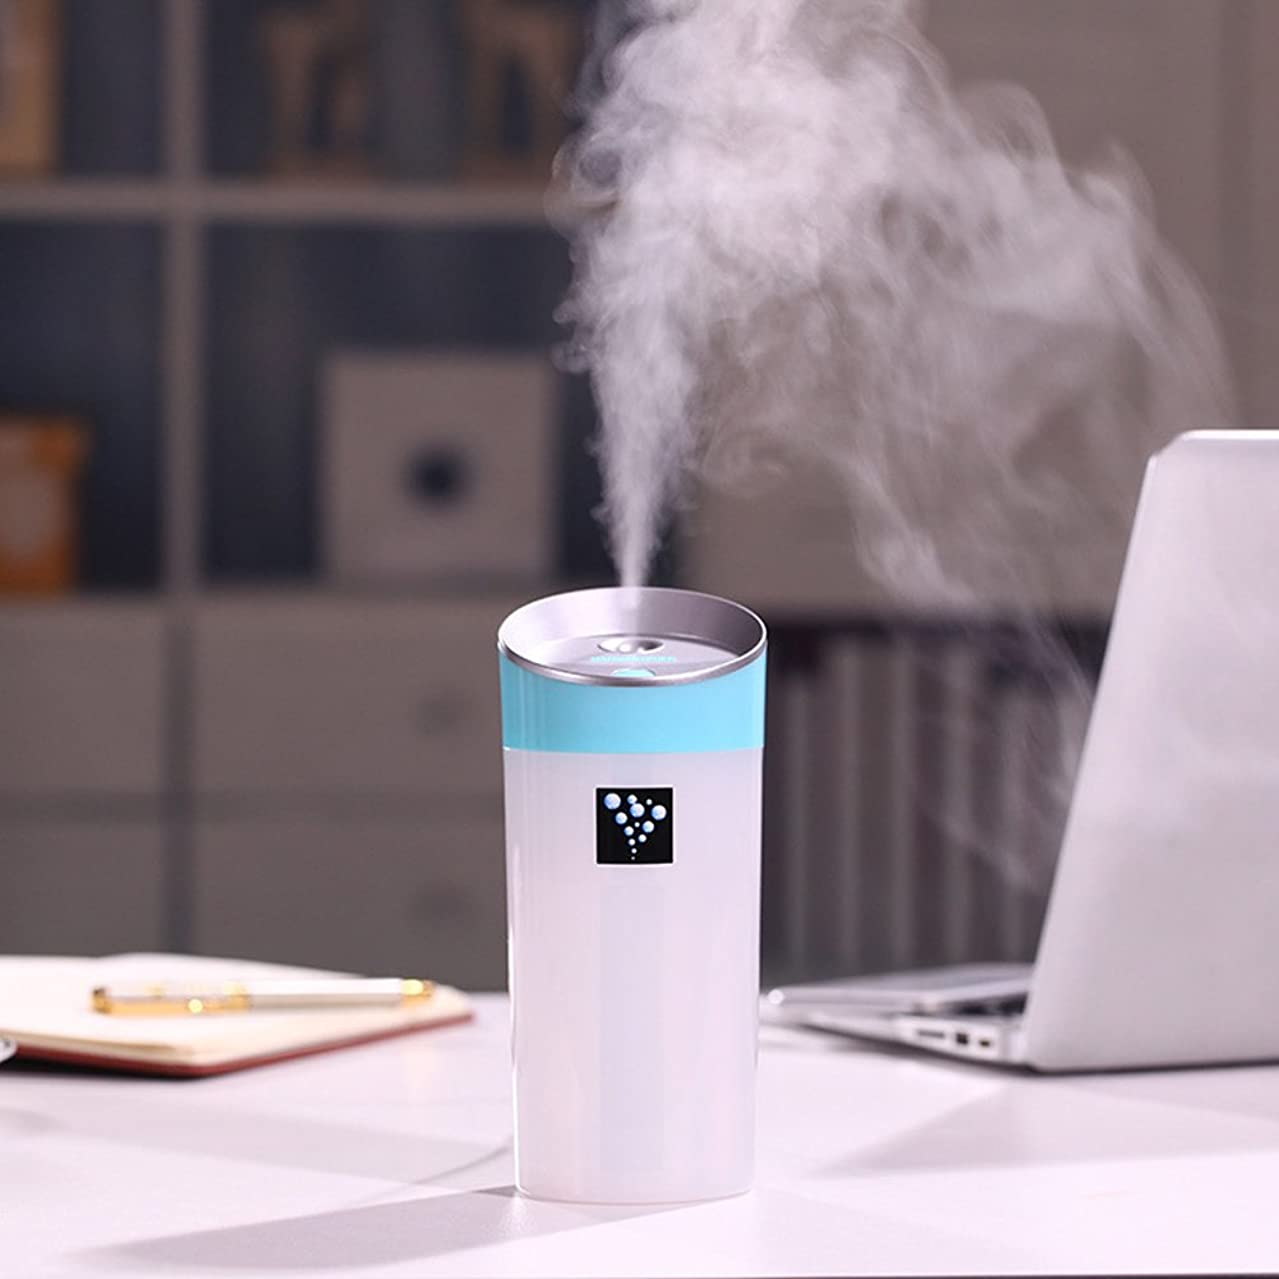 300ML Water Bottle Usb Essential Oil Diffuser,Oil Aroma Diffuser Aroma Mist Ultrasonic Air Humidifier for Spa Office Kitchen Home Car Yoga (Blue)